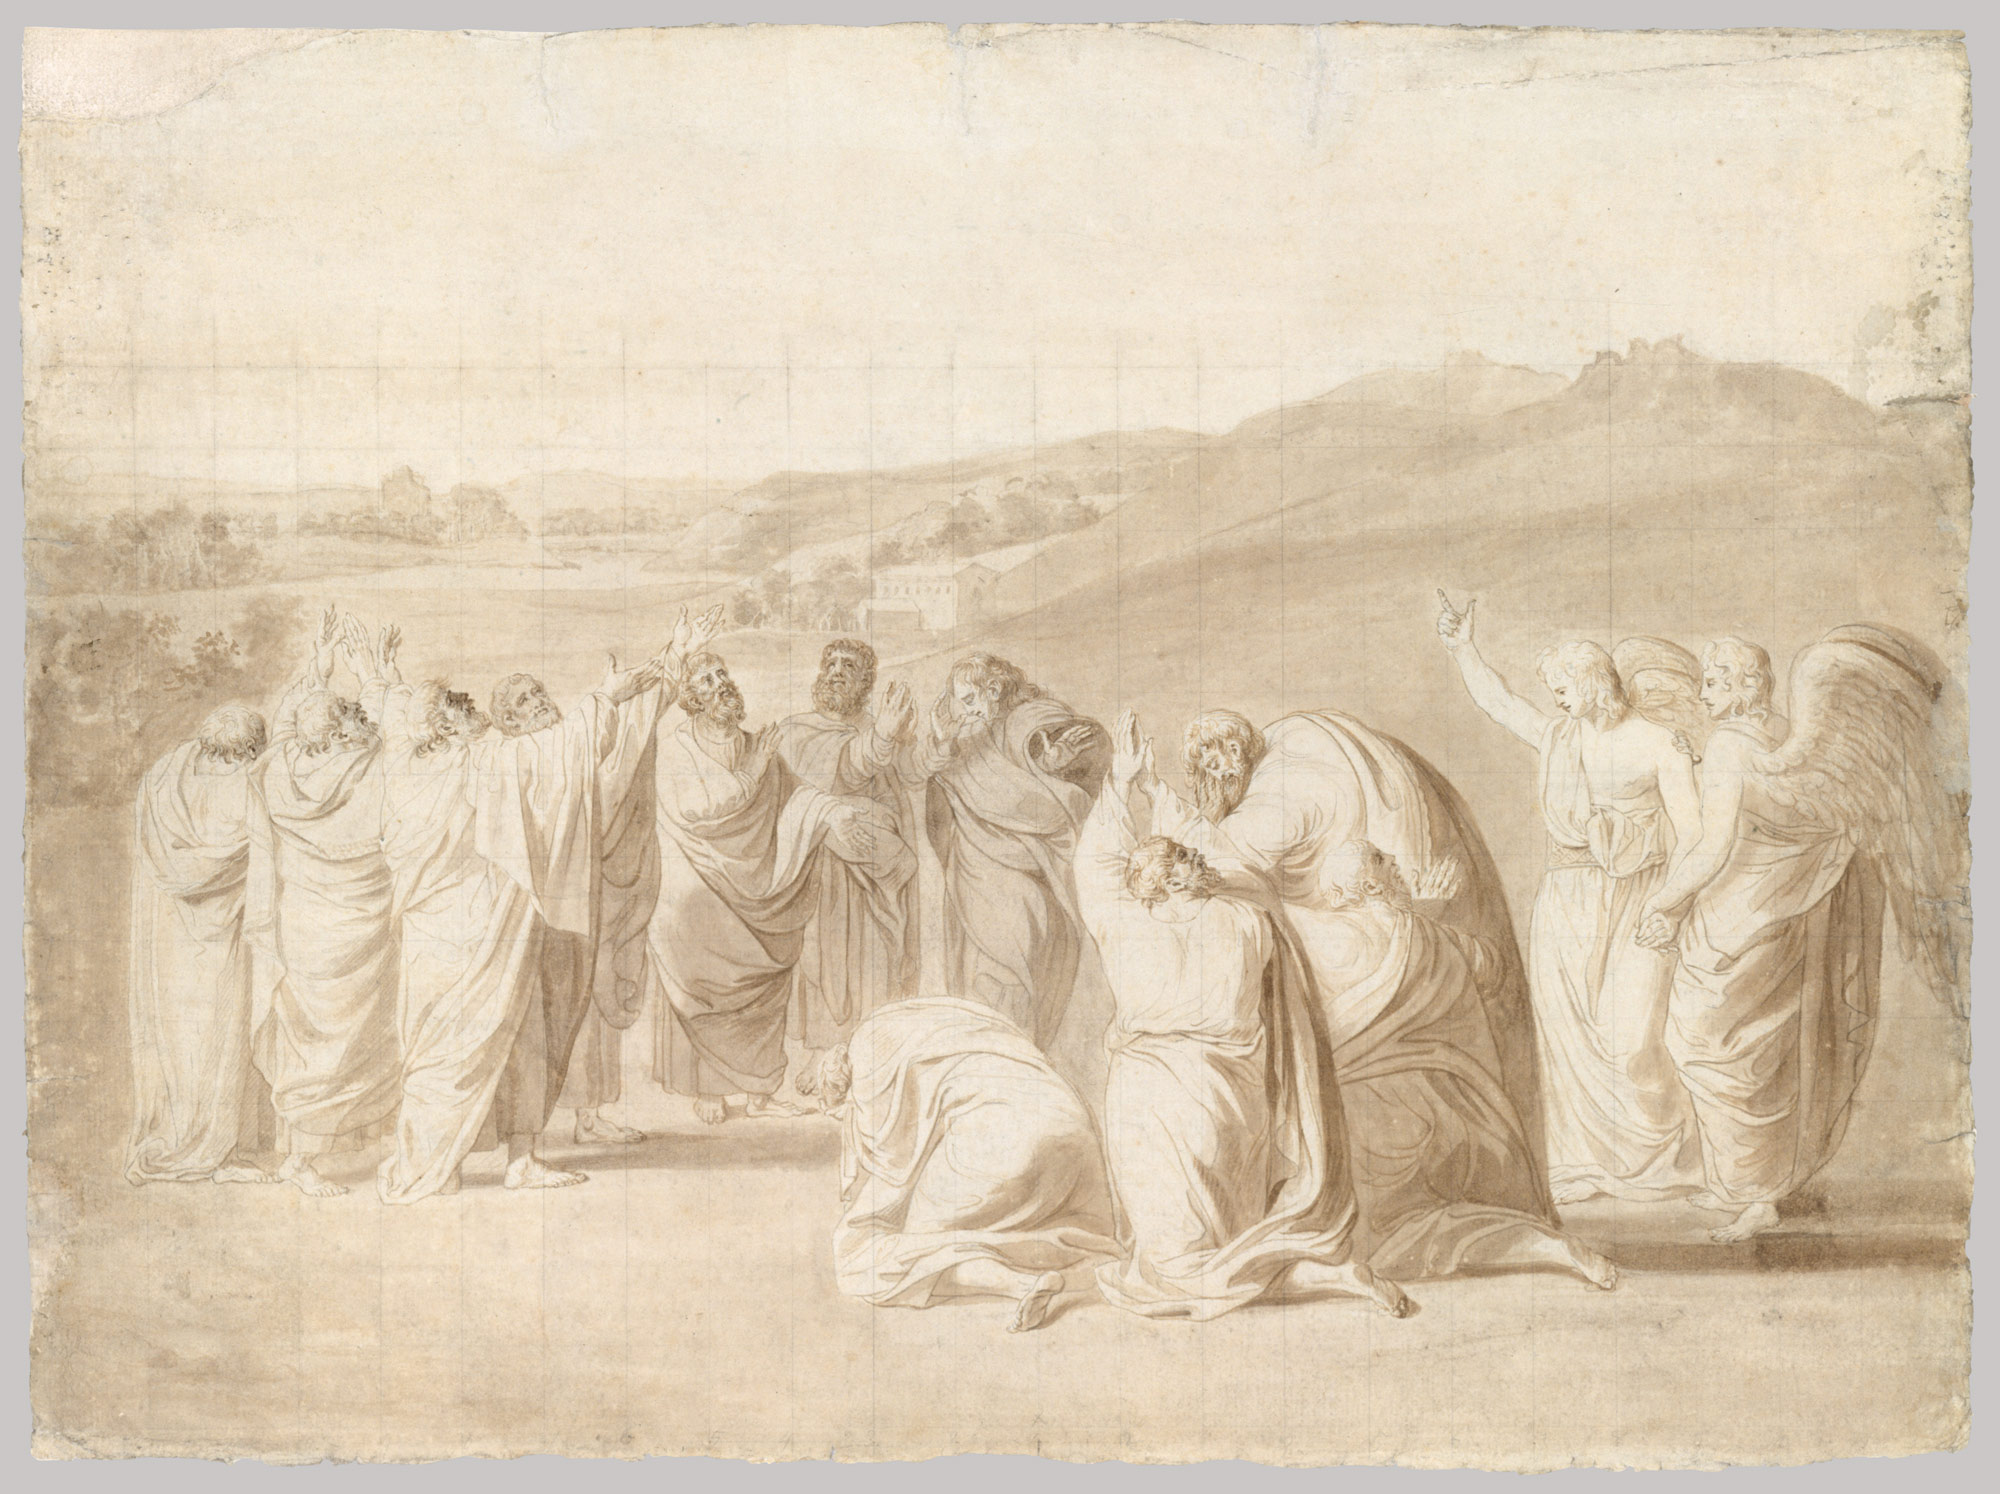 Study for The Ascension